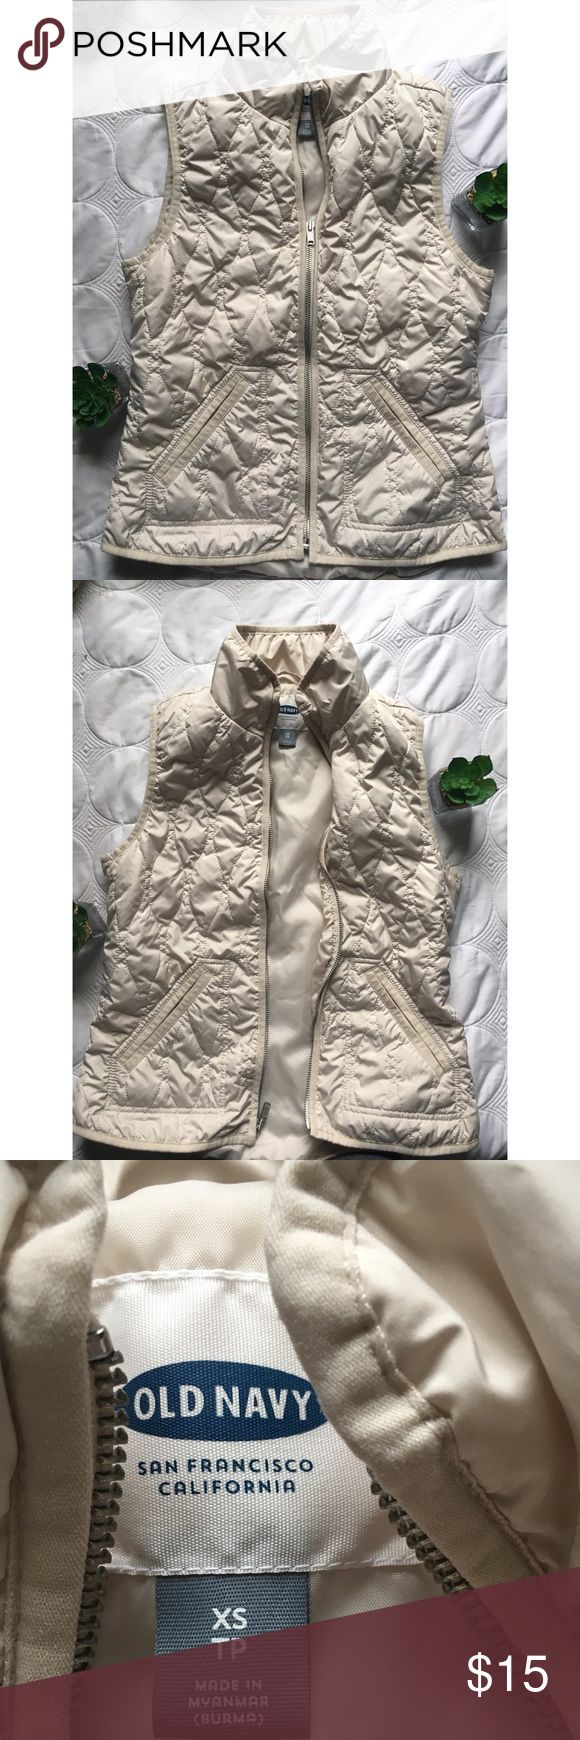 Cream old navy vest Cream old navy fall vest! Great condition only worn a few times! Zipper works perfectly! No rips or stains! Size x small! Old Navy Jackets & Coats Vests